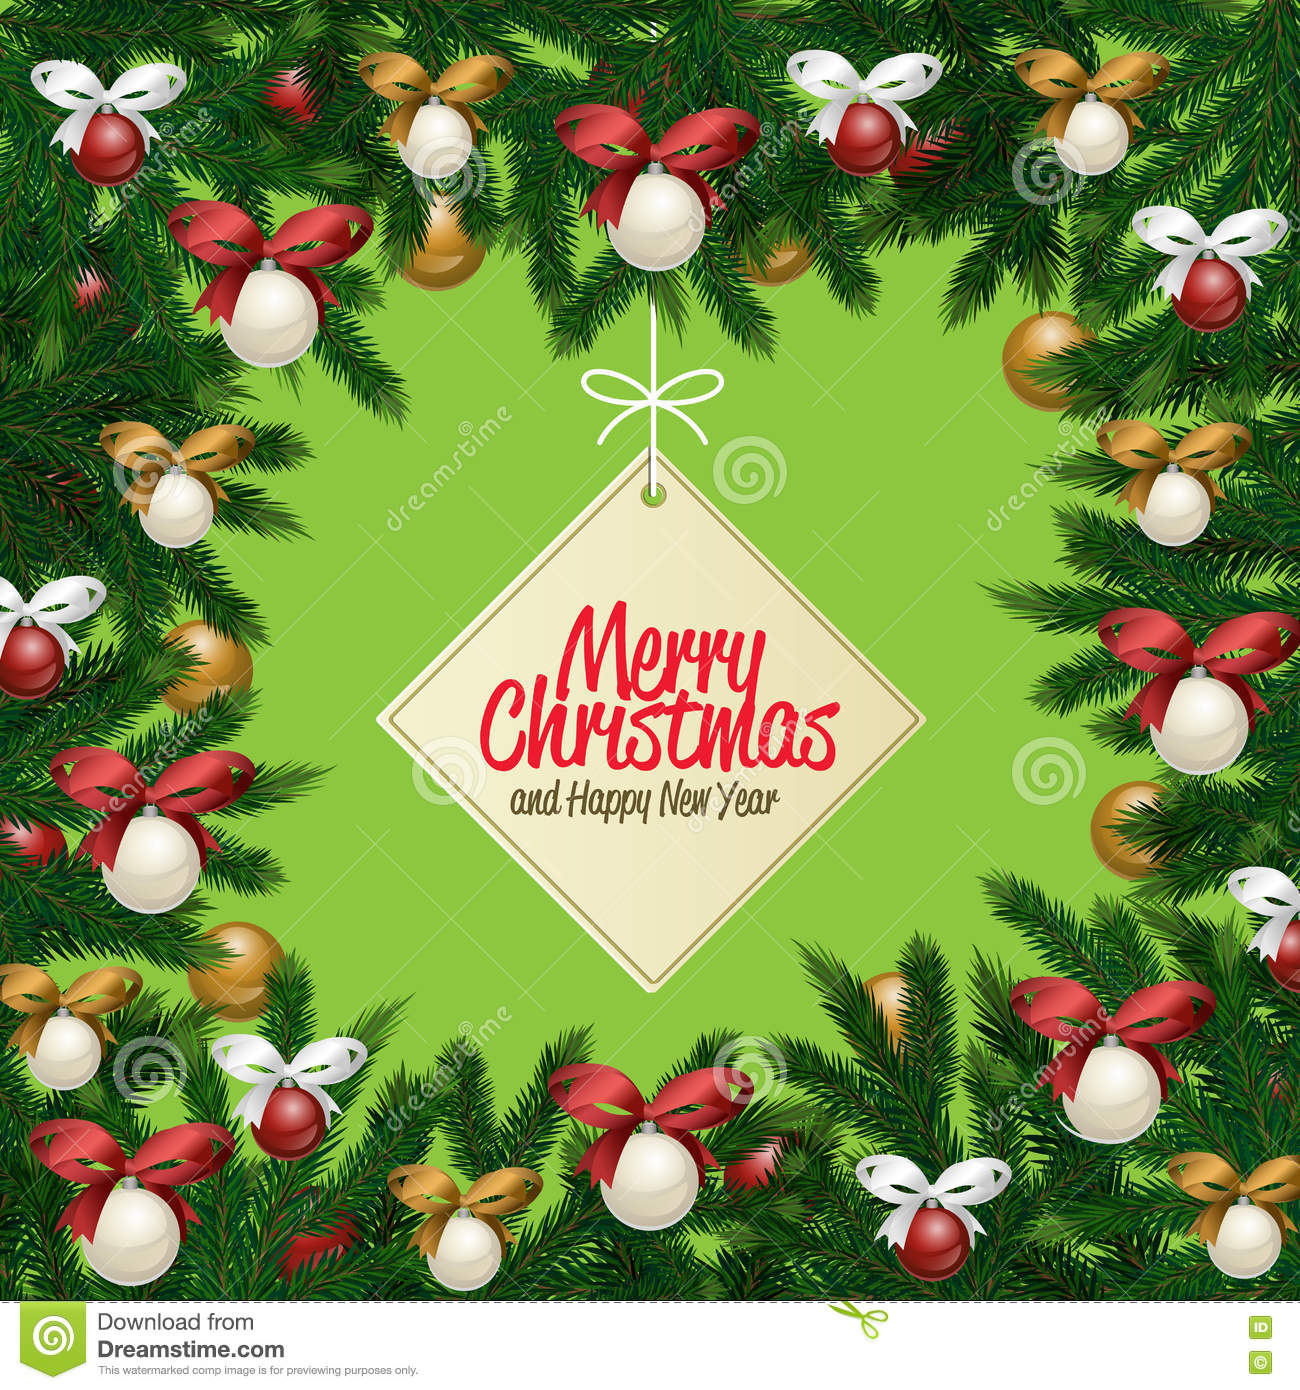 Merry Christmas And Happy New Year Greeting Card Stock Vector